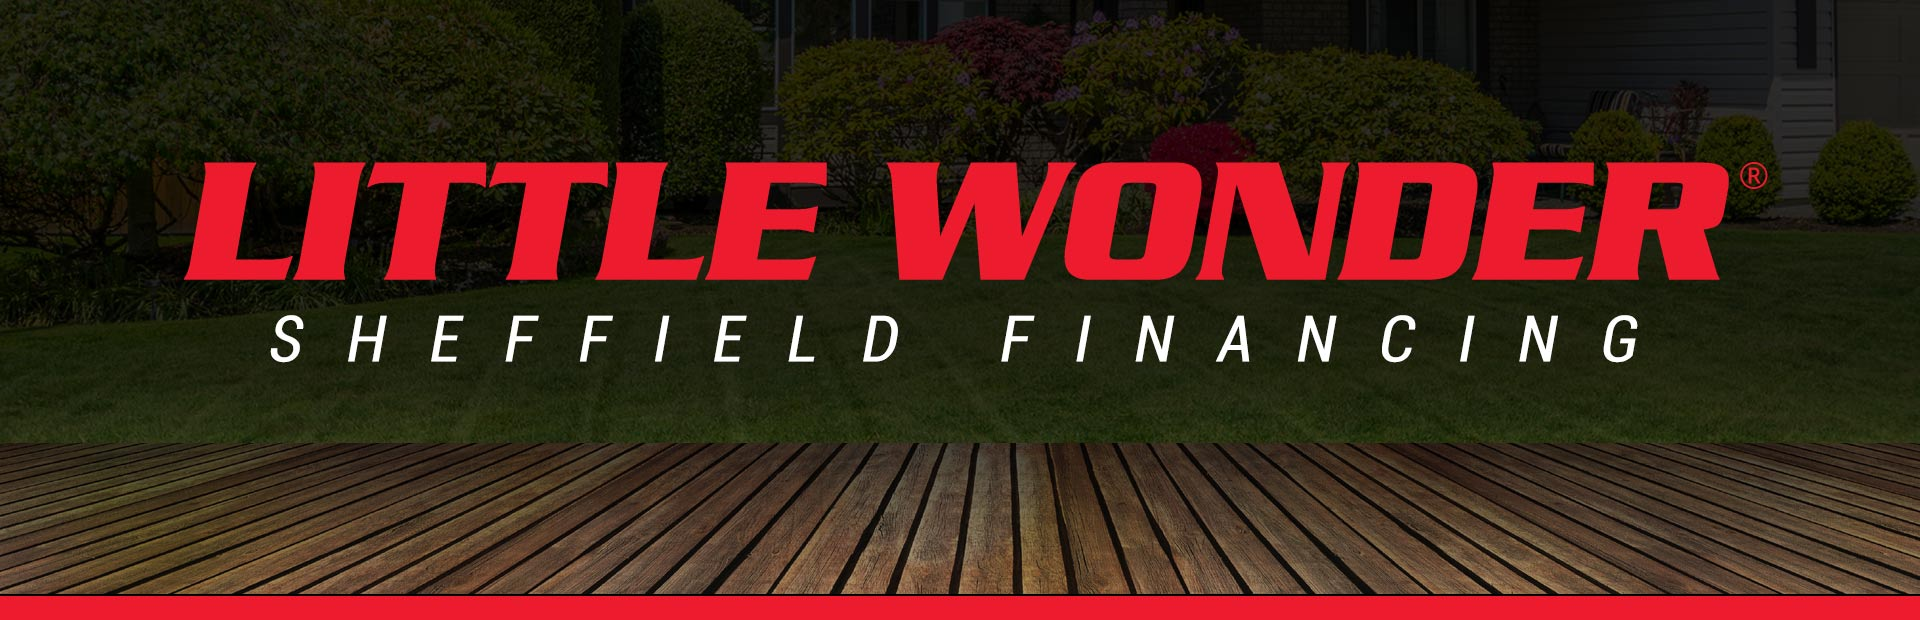 Little Wonder: Sheffield Financing